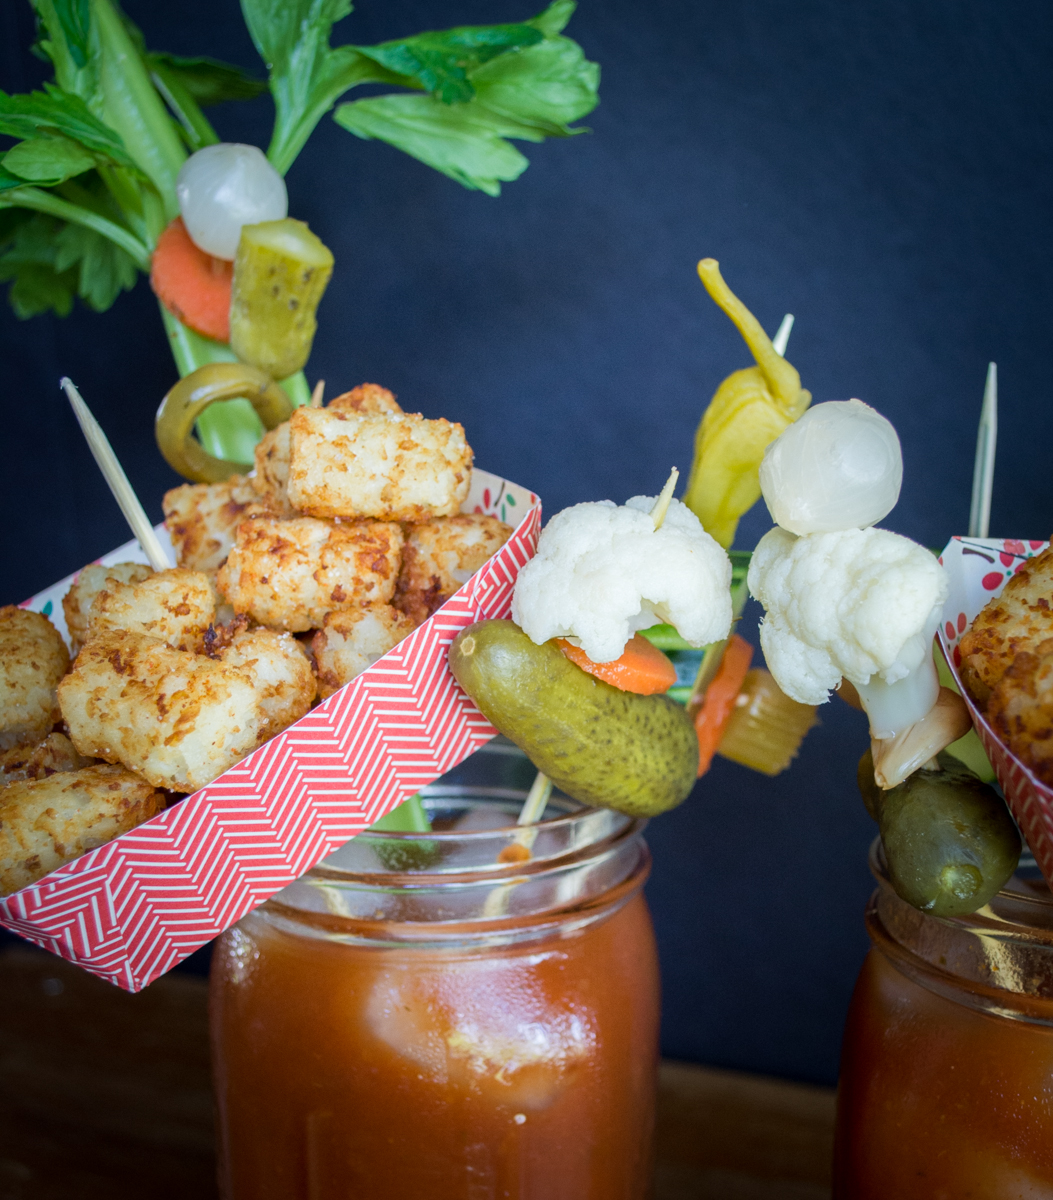 The Epic Vegan Bloody Mary Meal